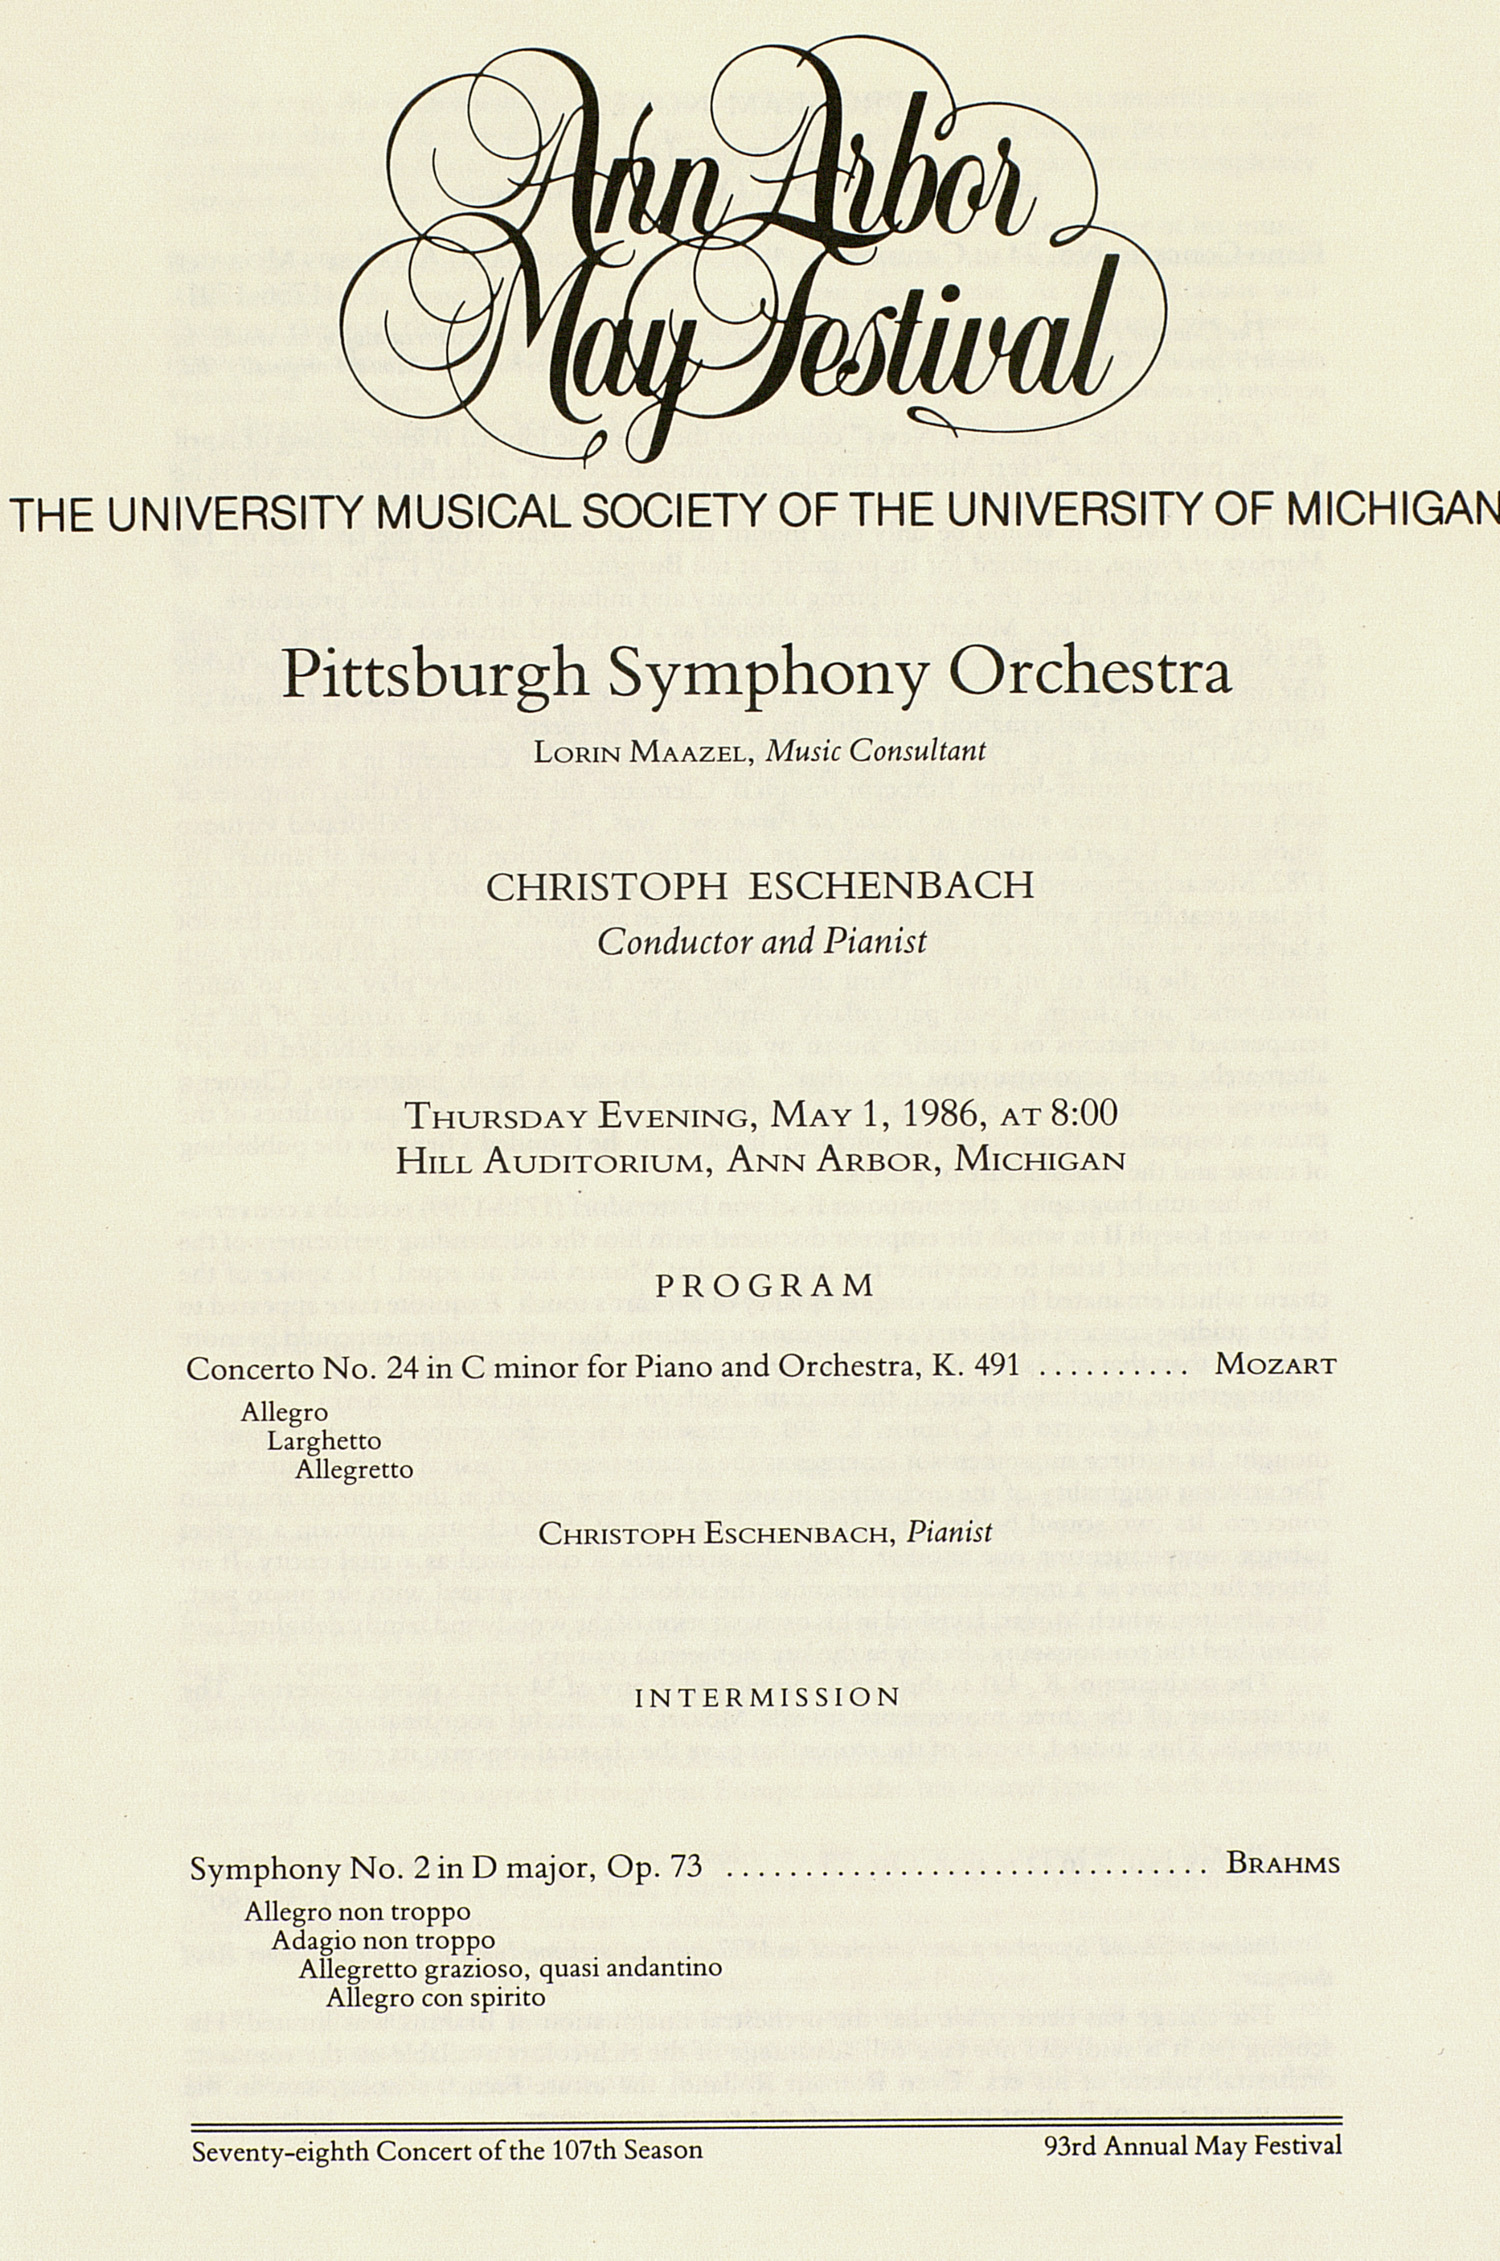 UMS Concert Program, May 1, 1986: Ann Arbor May Festival -- Pittsburgh Symphony Orchestra image